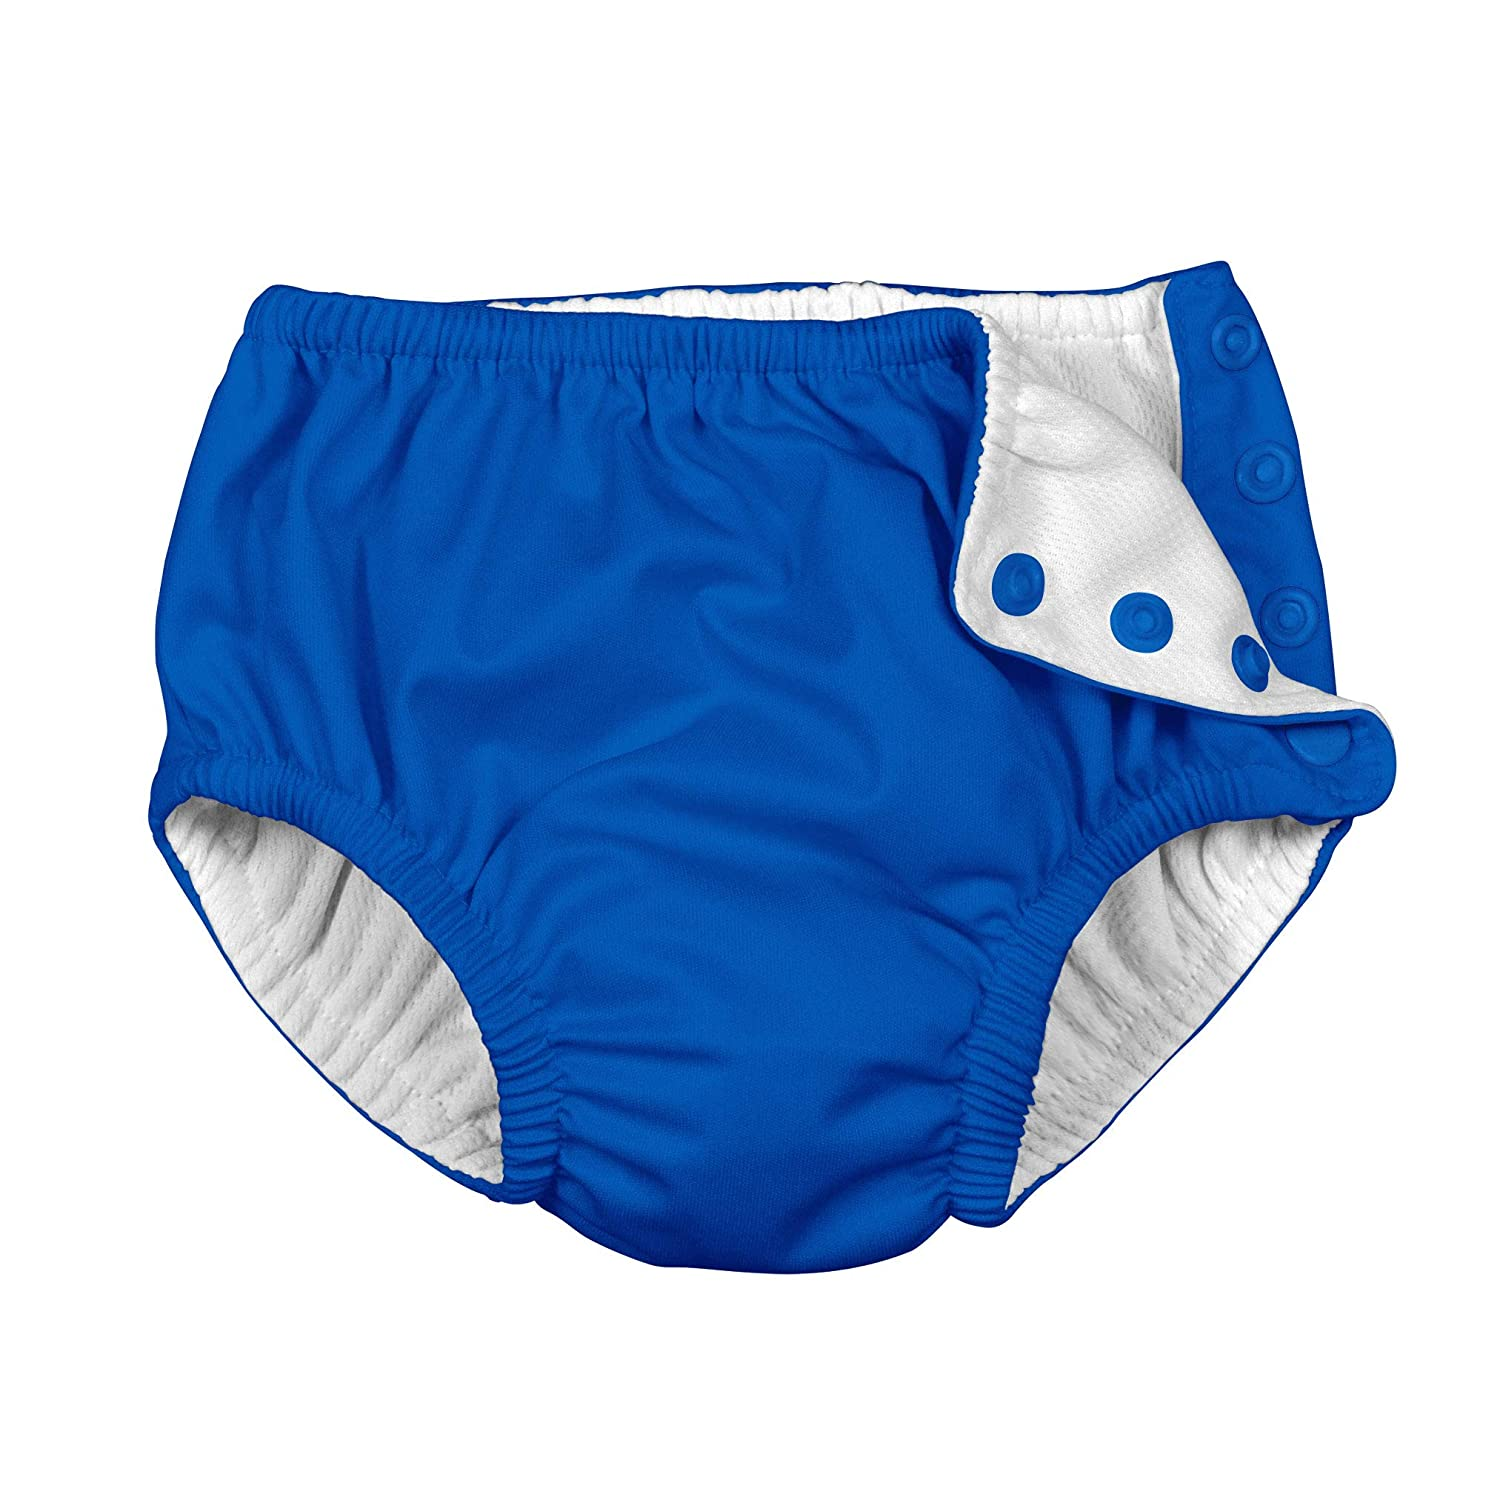 i play. Baby Ultimate Reusable Snap Swim Diaper, Royal Blue, 12 Month i play Children' s Apparel 721200